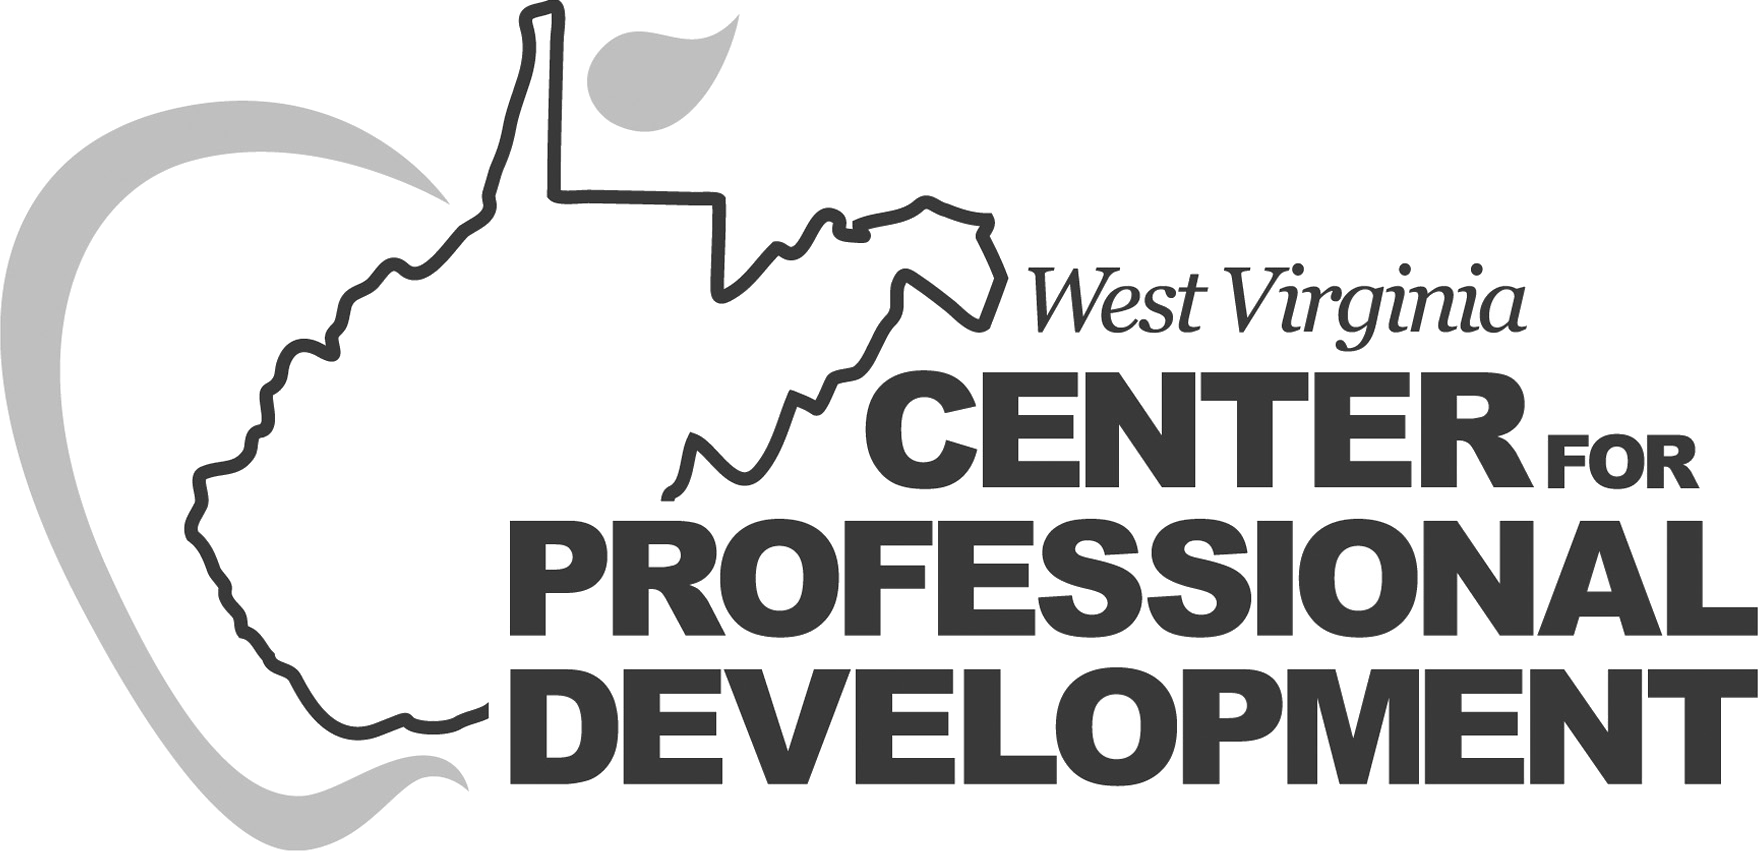 West Virginia Center for Professional Development